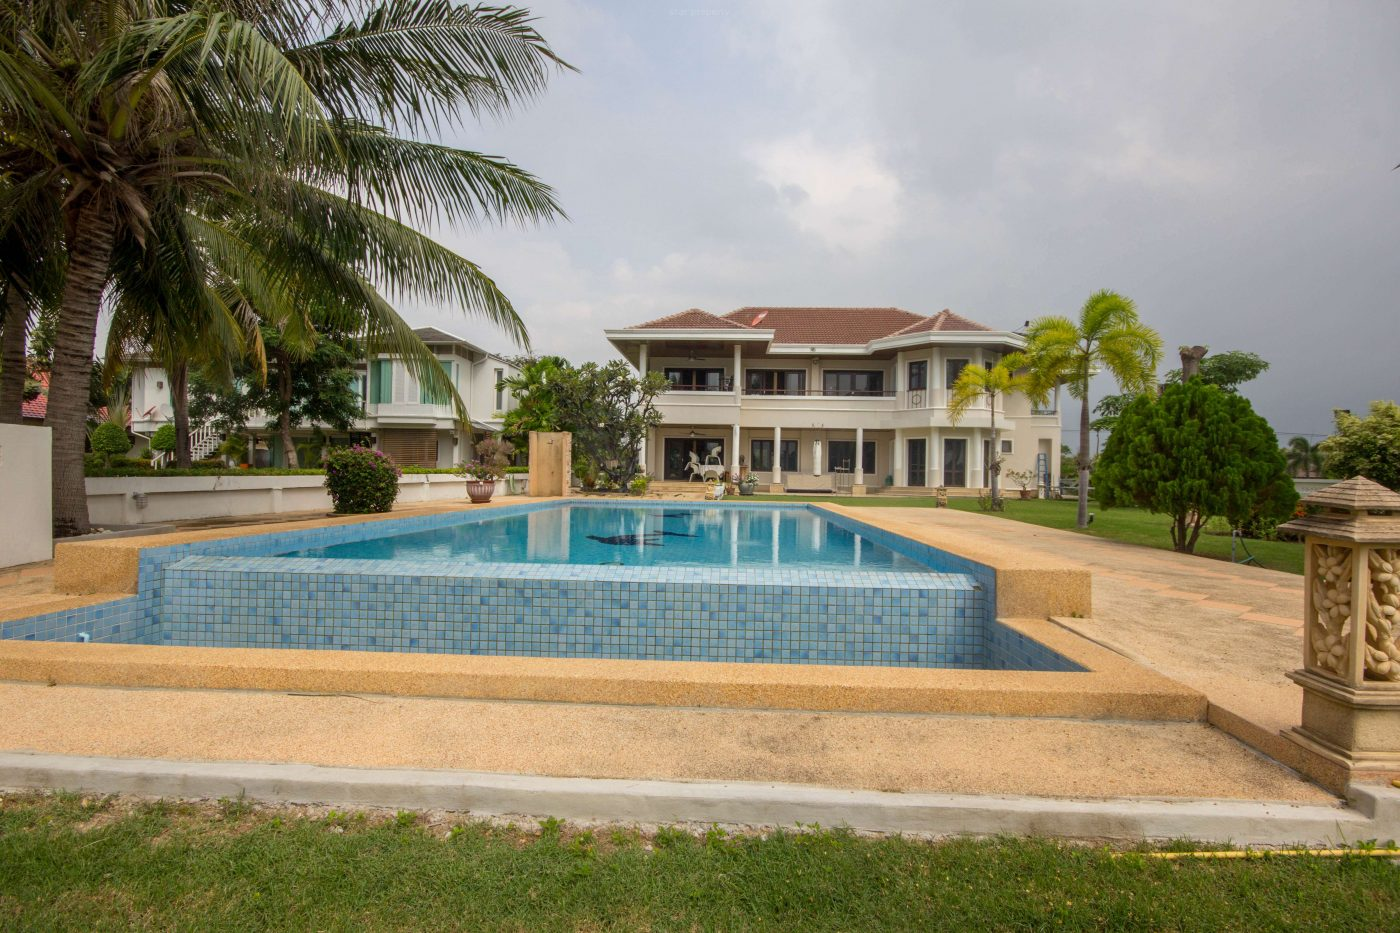 Beautiful Pool Villa on Golf Course for sale at Hua Hin District, Prachuap Khiri Khan, Thailand